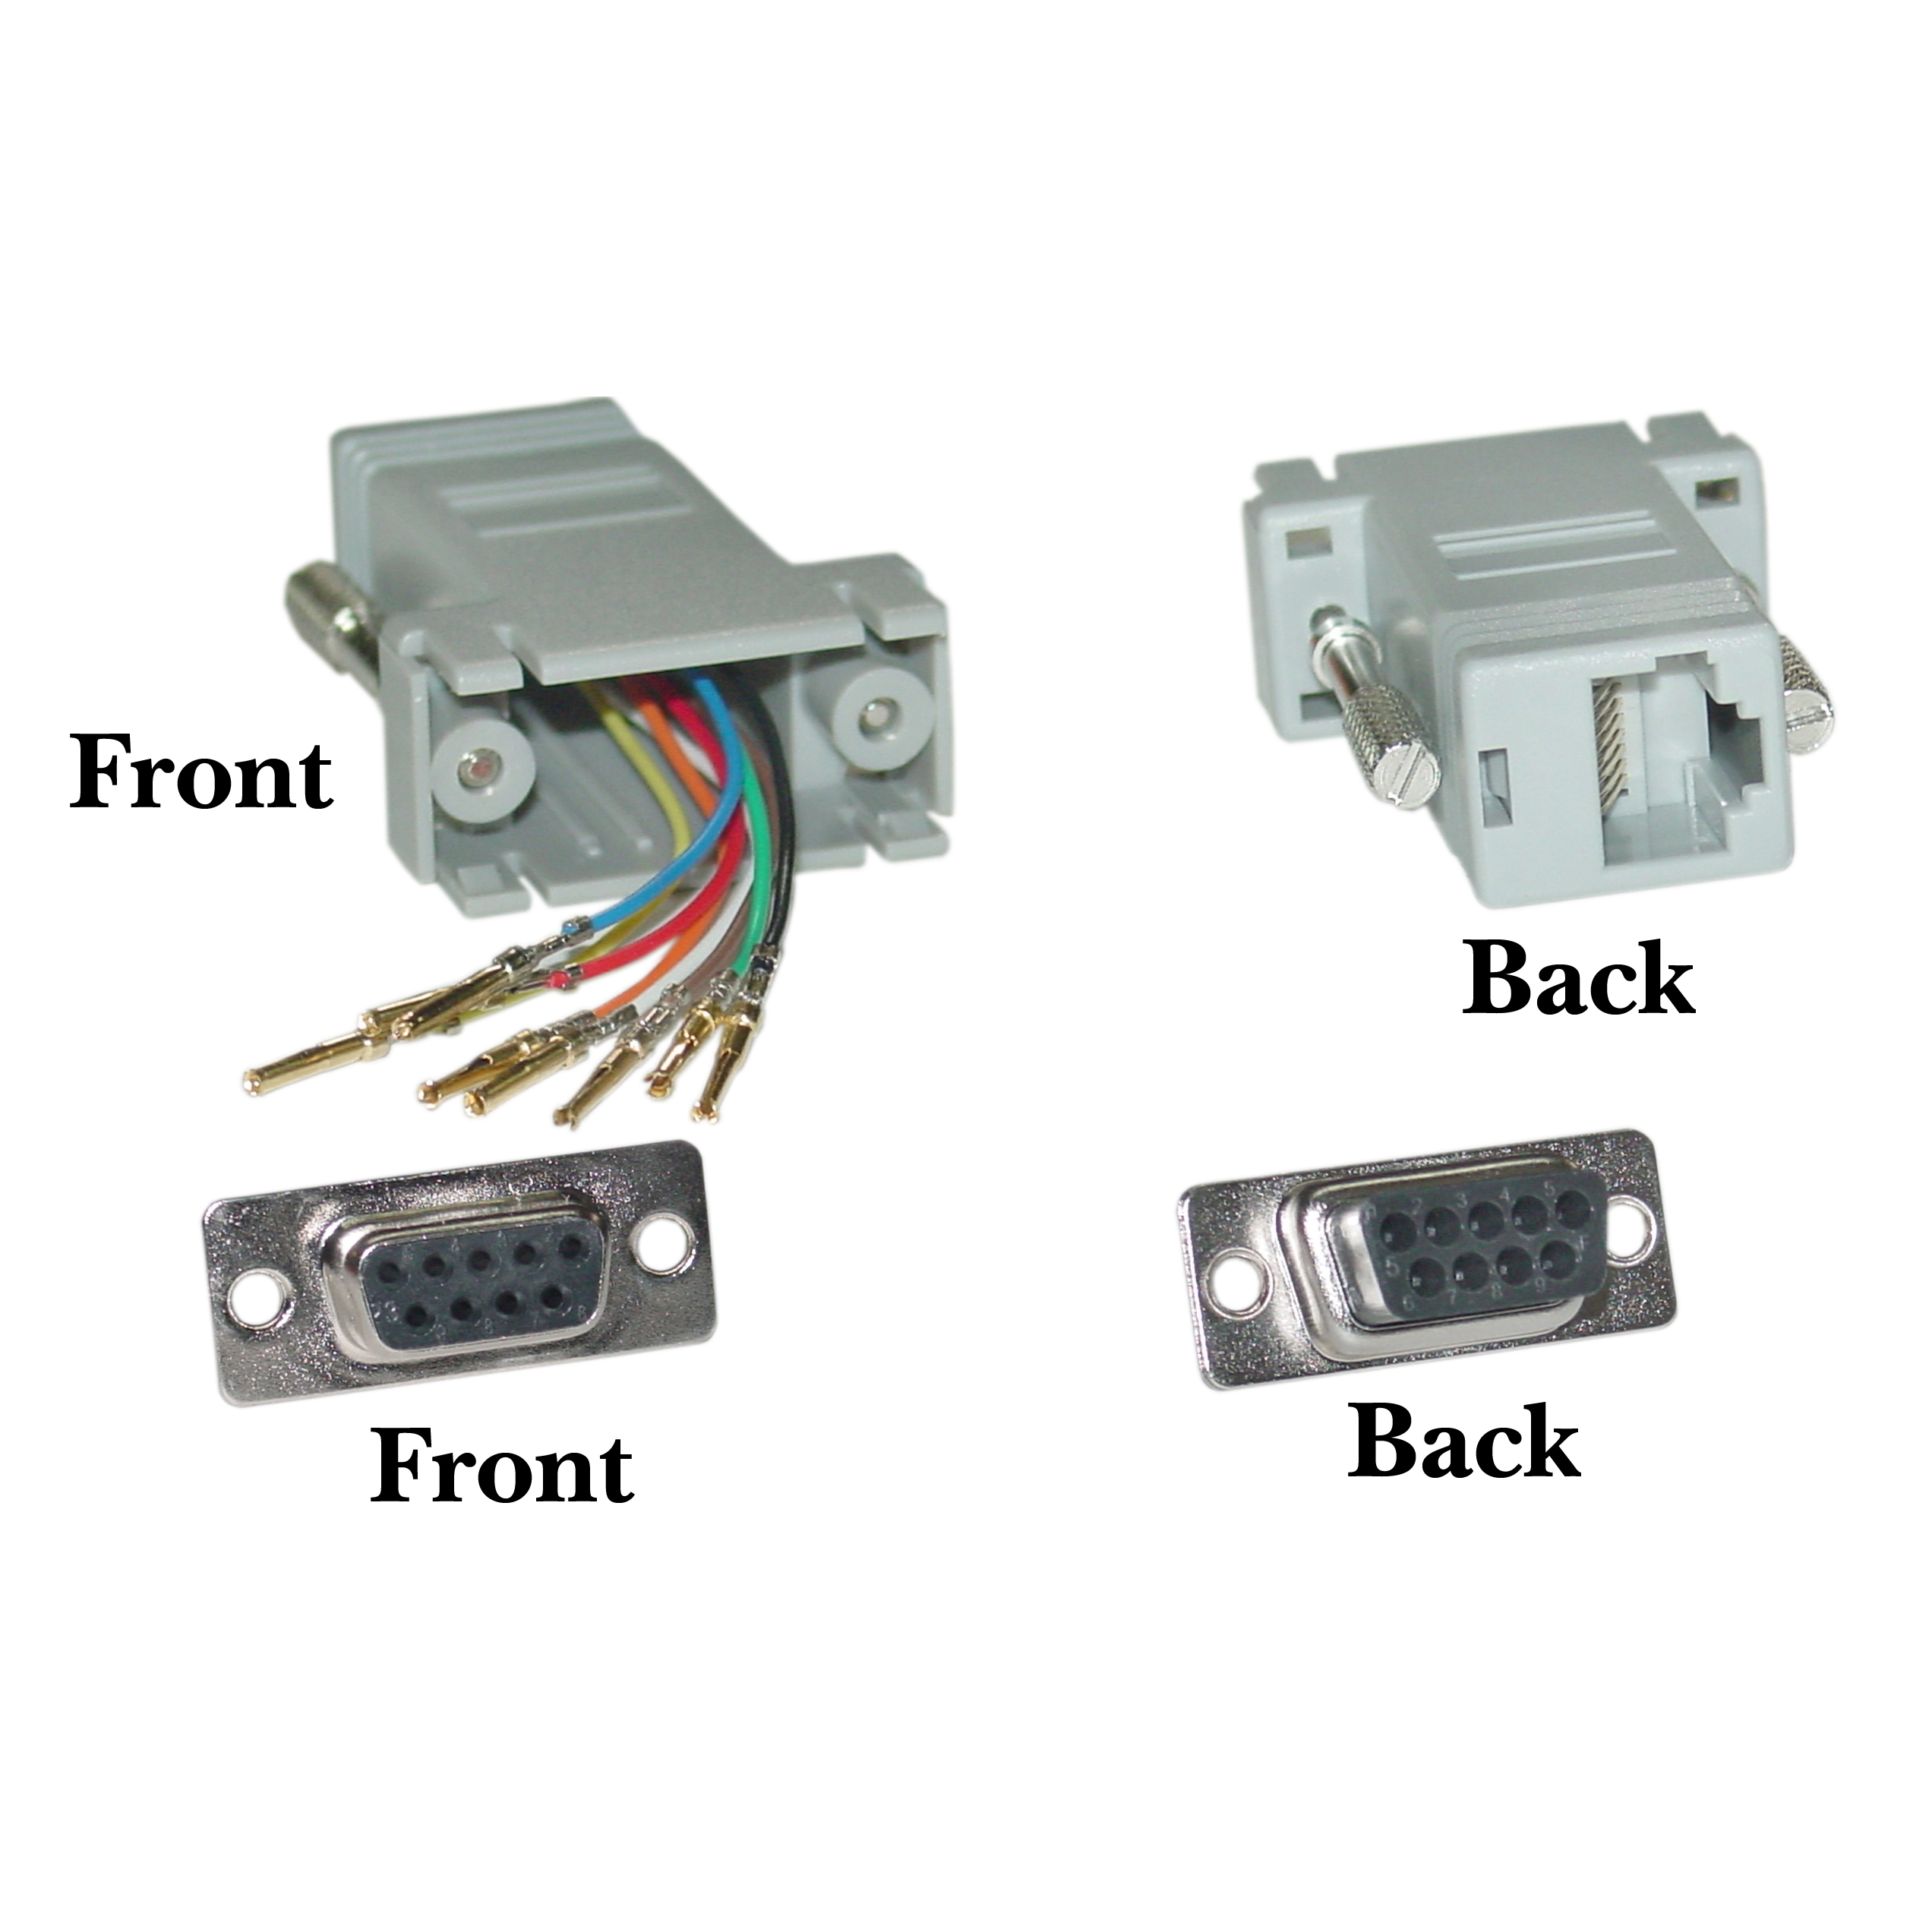 rj31x pin outs related keywords suggestions rj31x pin outs rj31x phone jack wiring additionally harness diagram